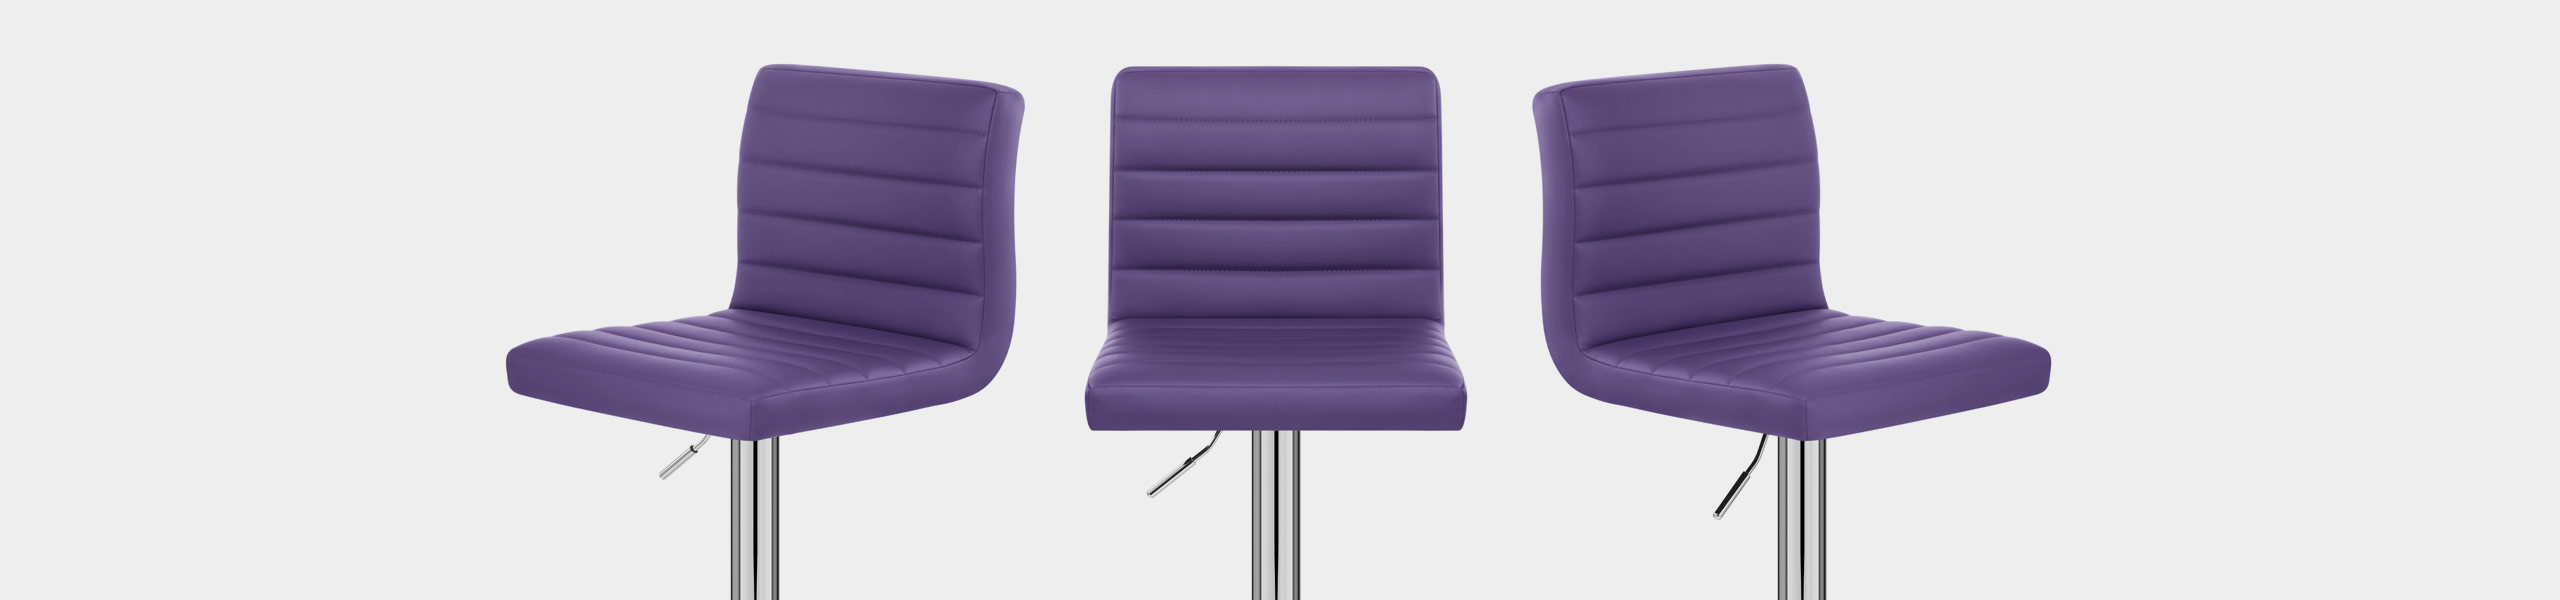 Mint Bar Stool Purple Video Banner